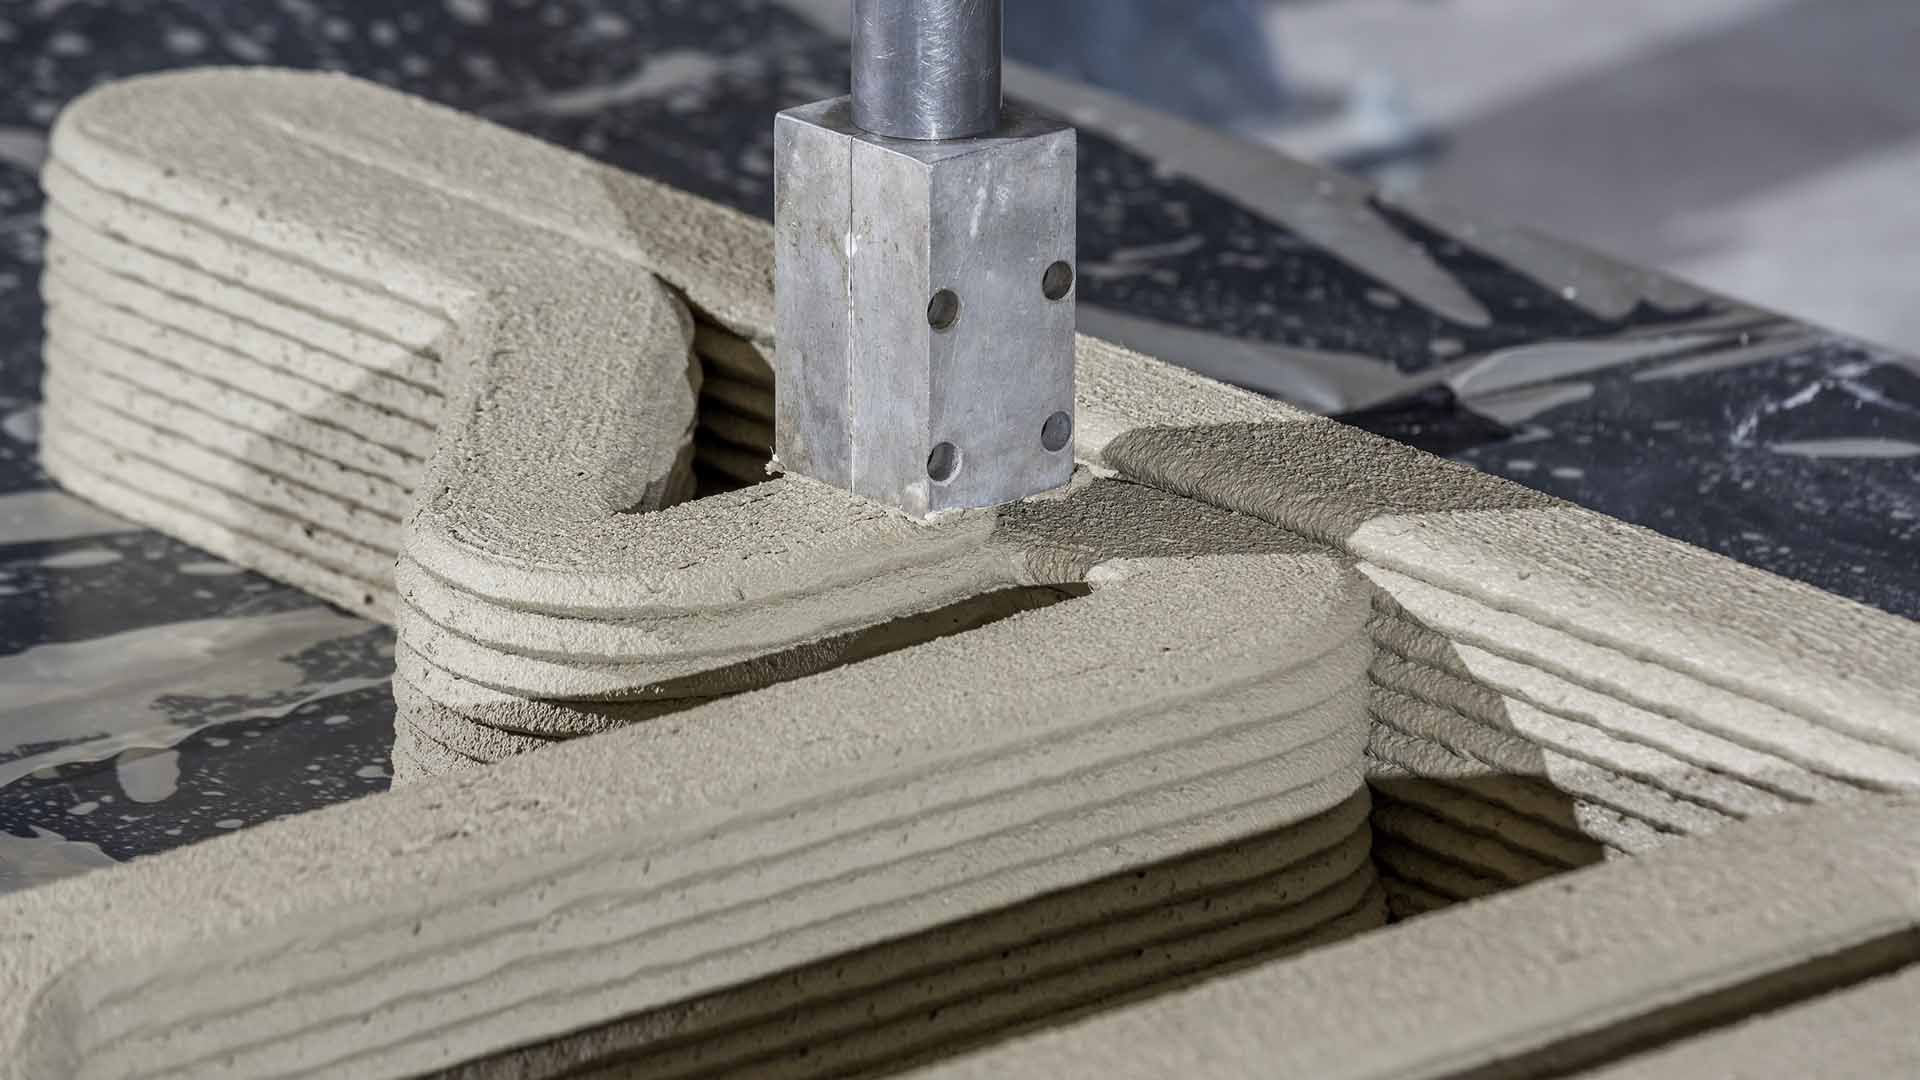 3D-printed construction could provide robust and flexible emergency accommodation